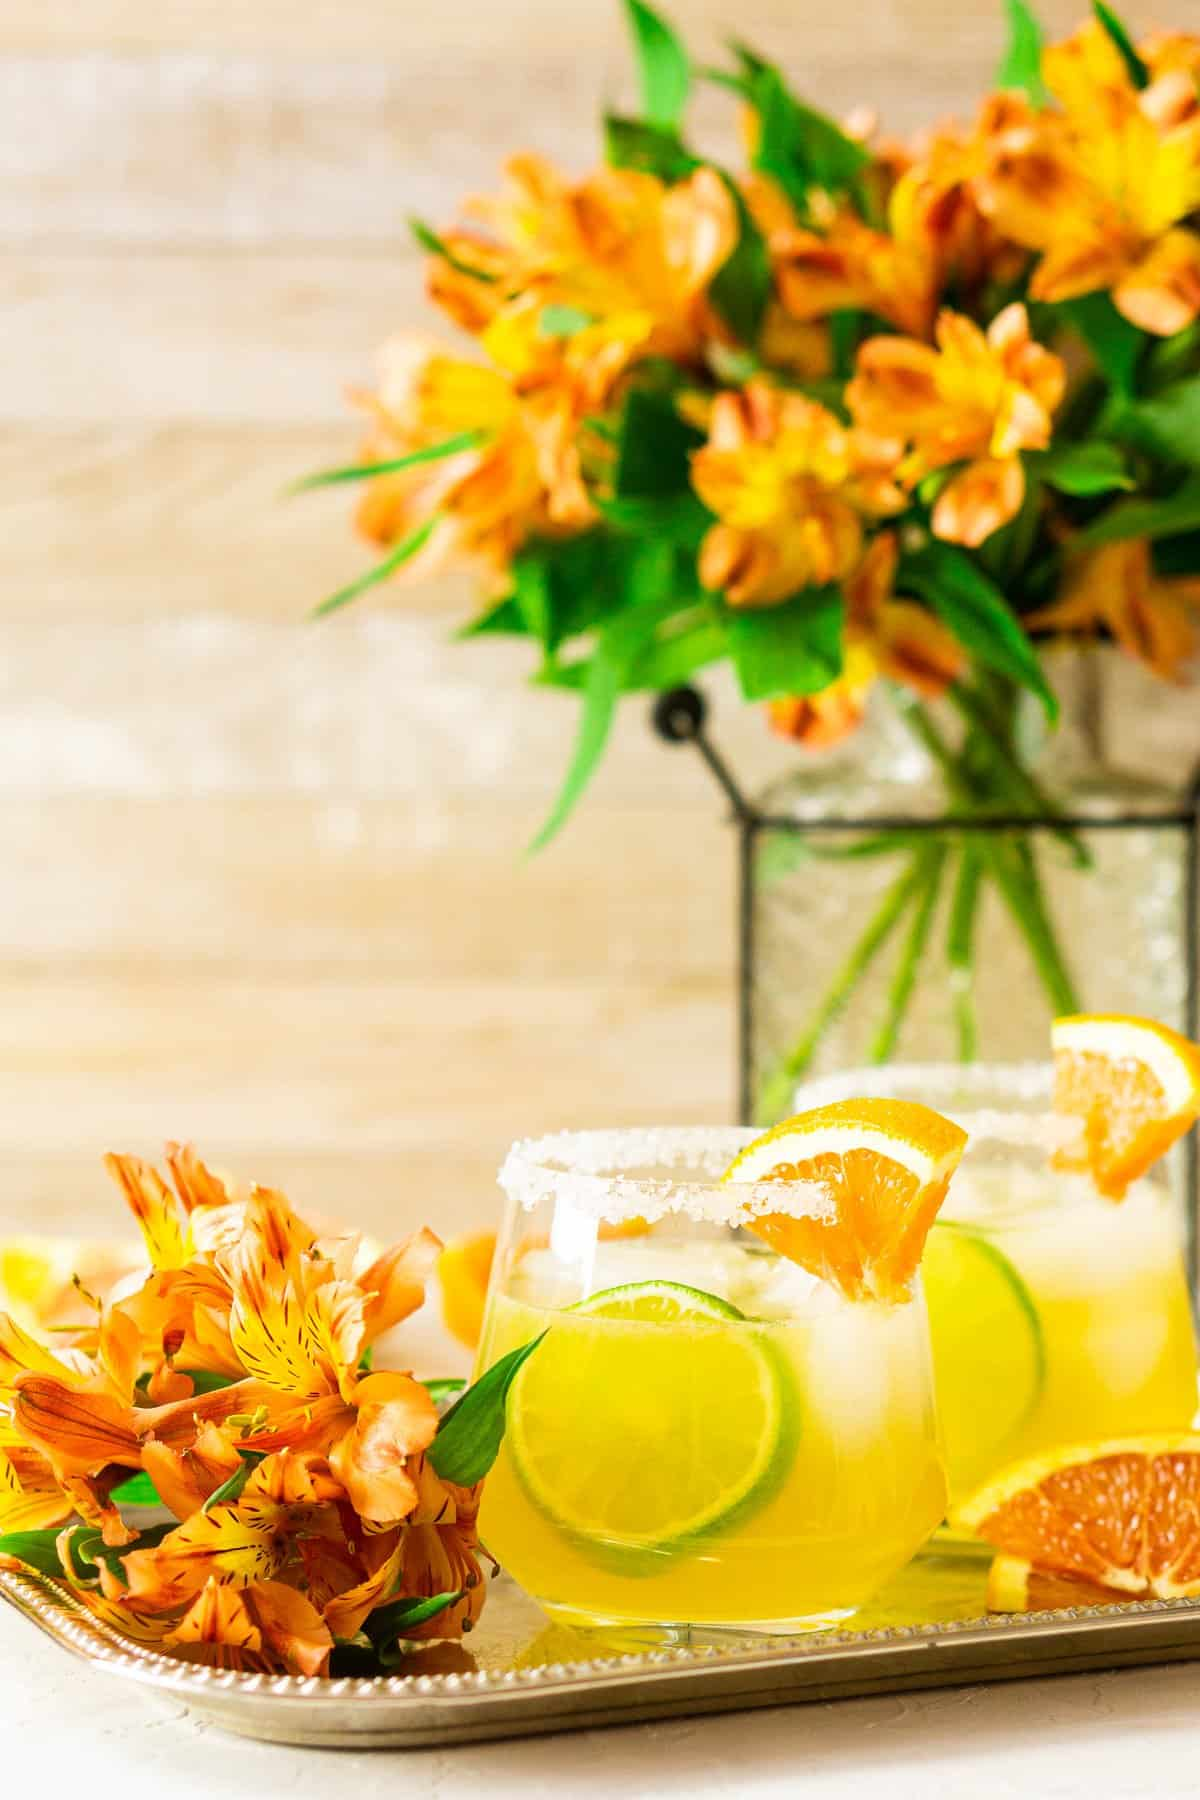 Looking straight onto a Cara Cara margarita with flowers in the background and to the side.